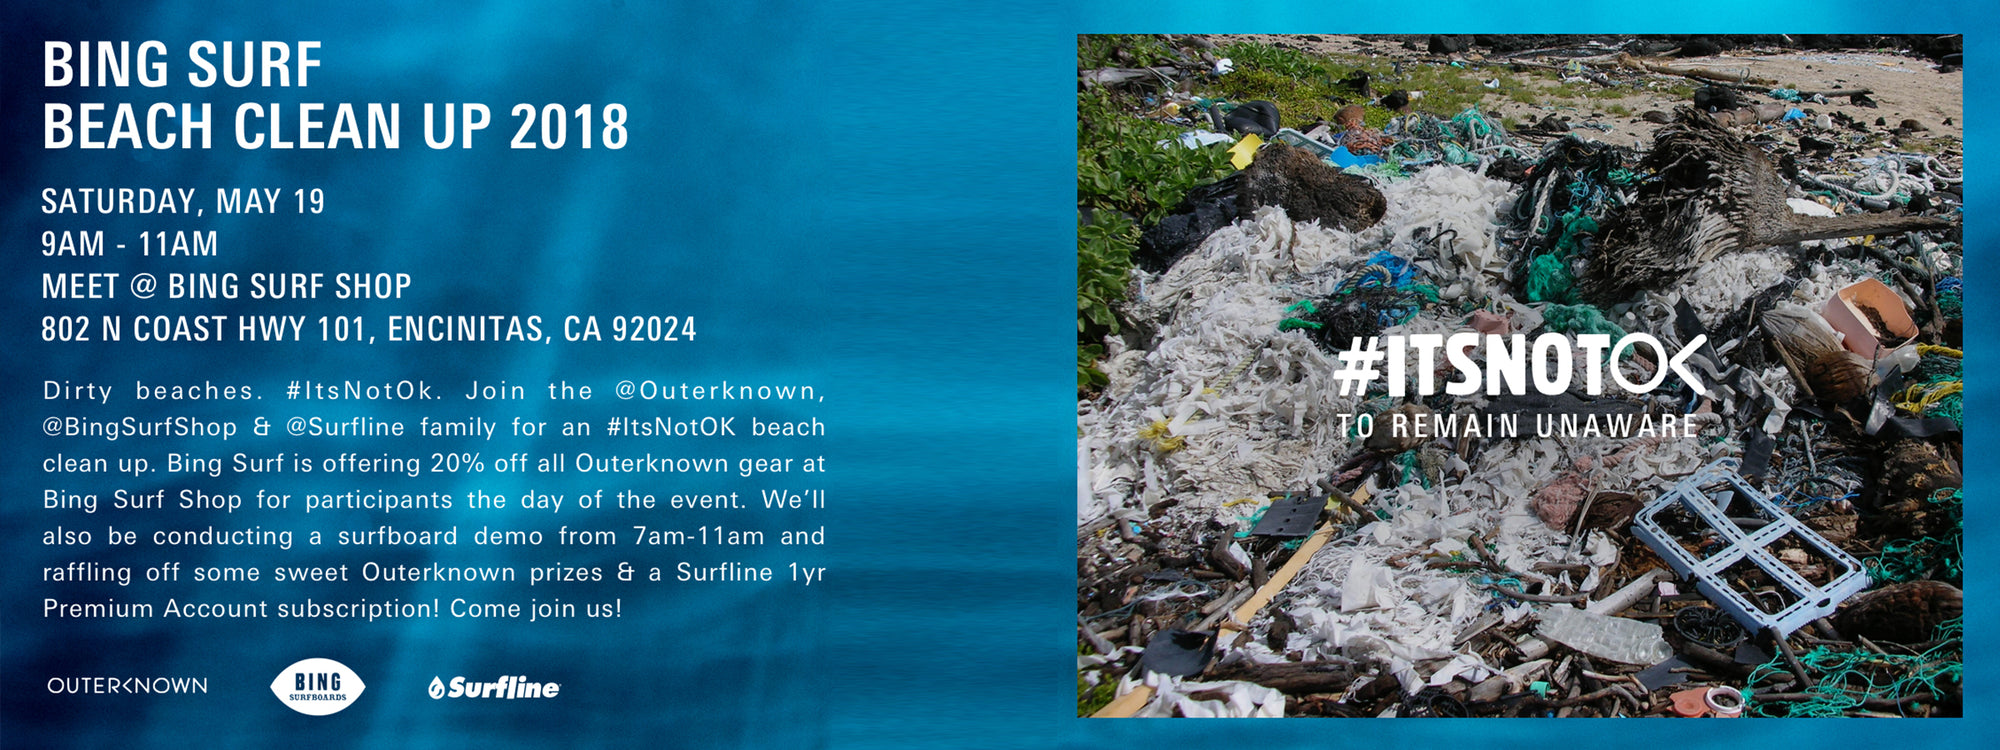 Beach Cleanup and Board Demo Sponsored by Outerknown and Surfline